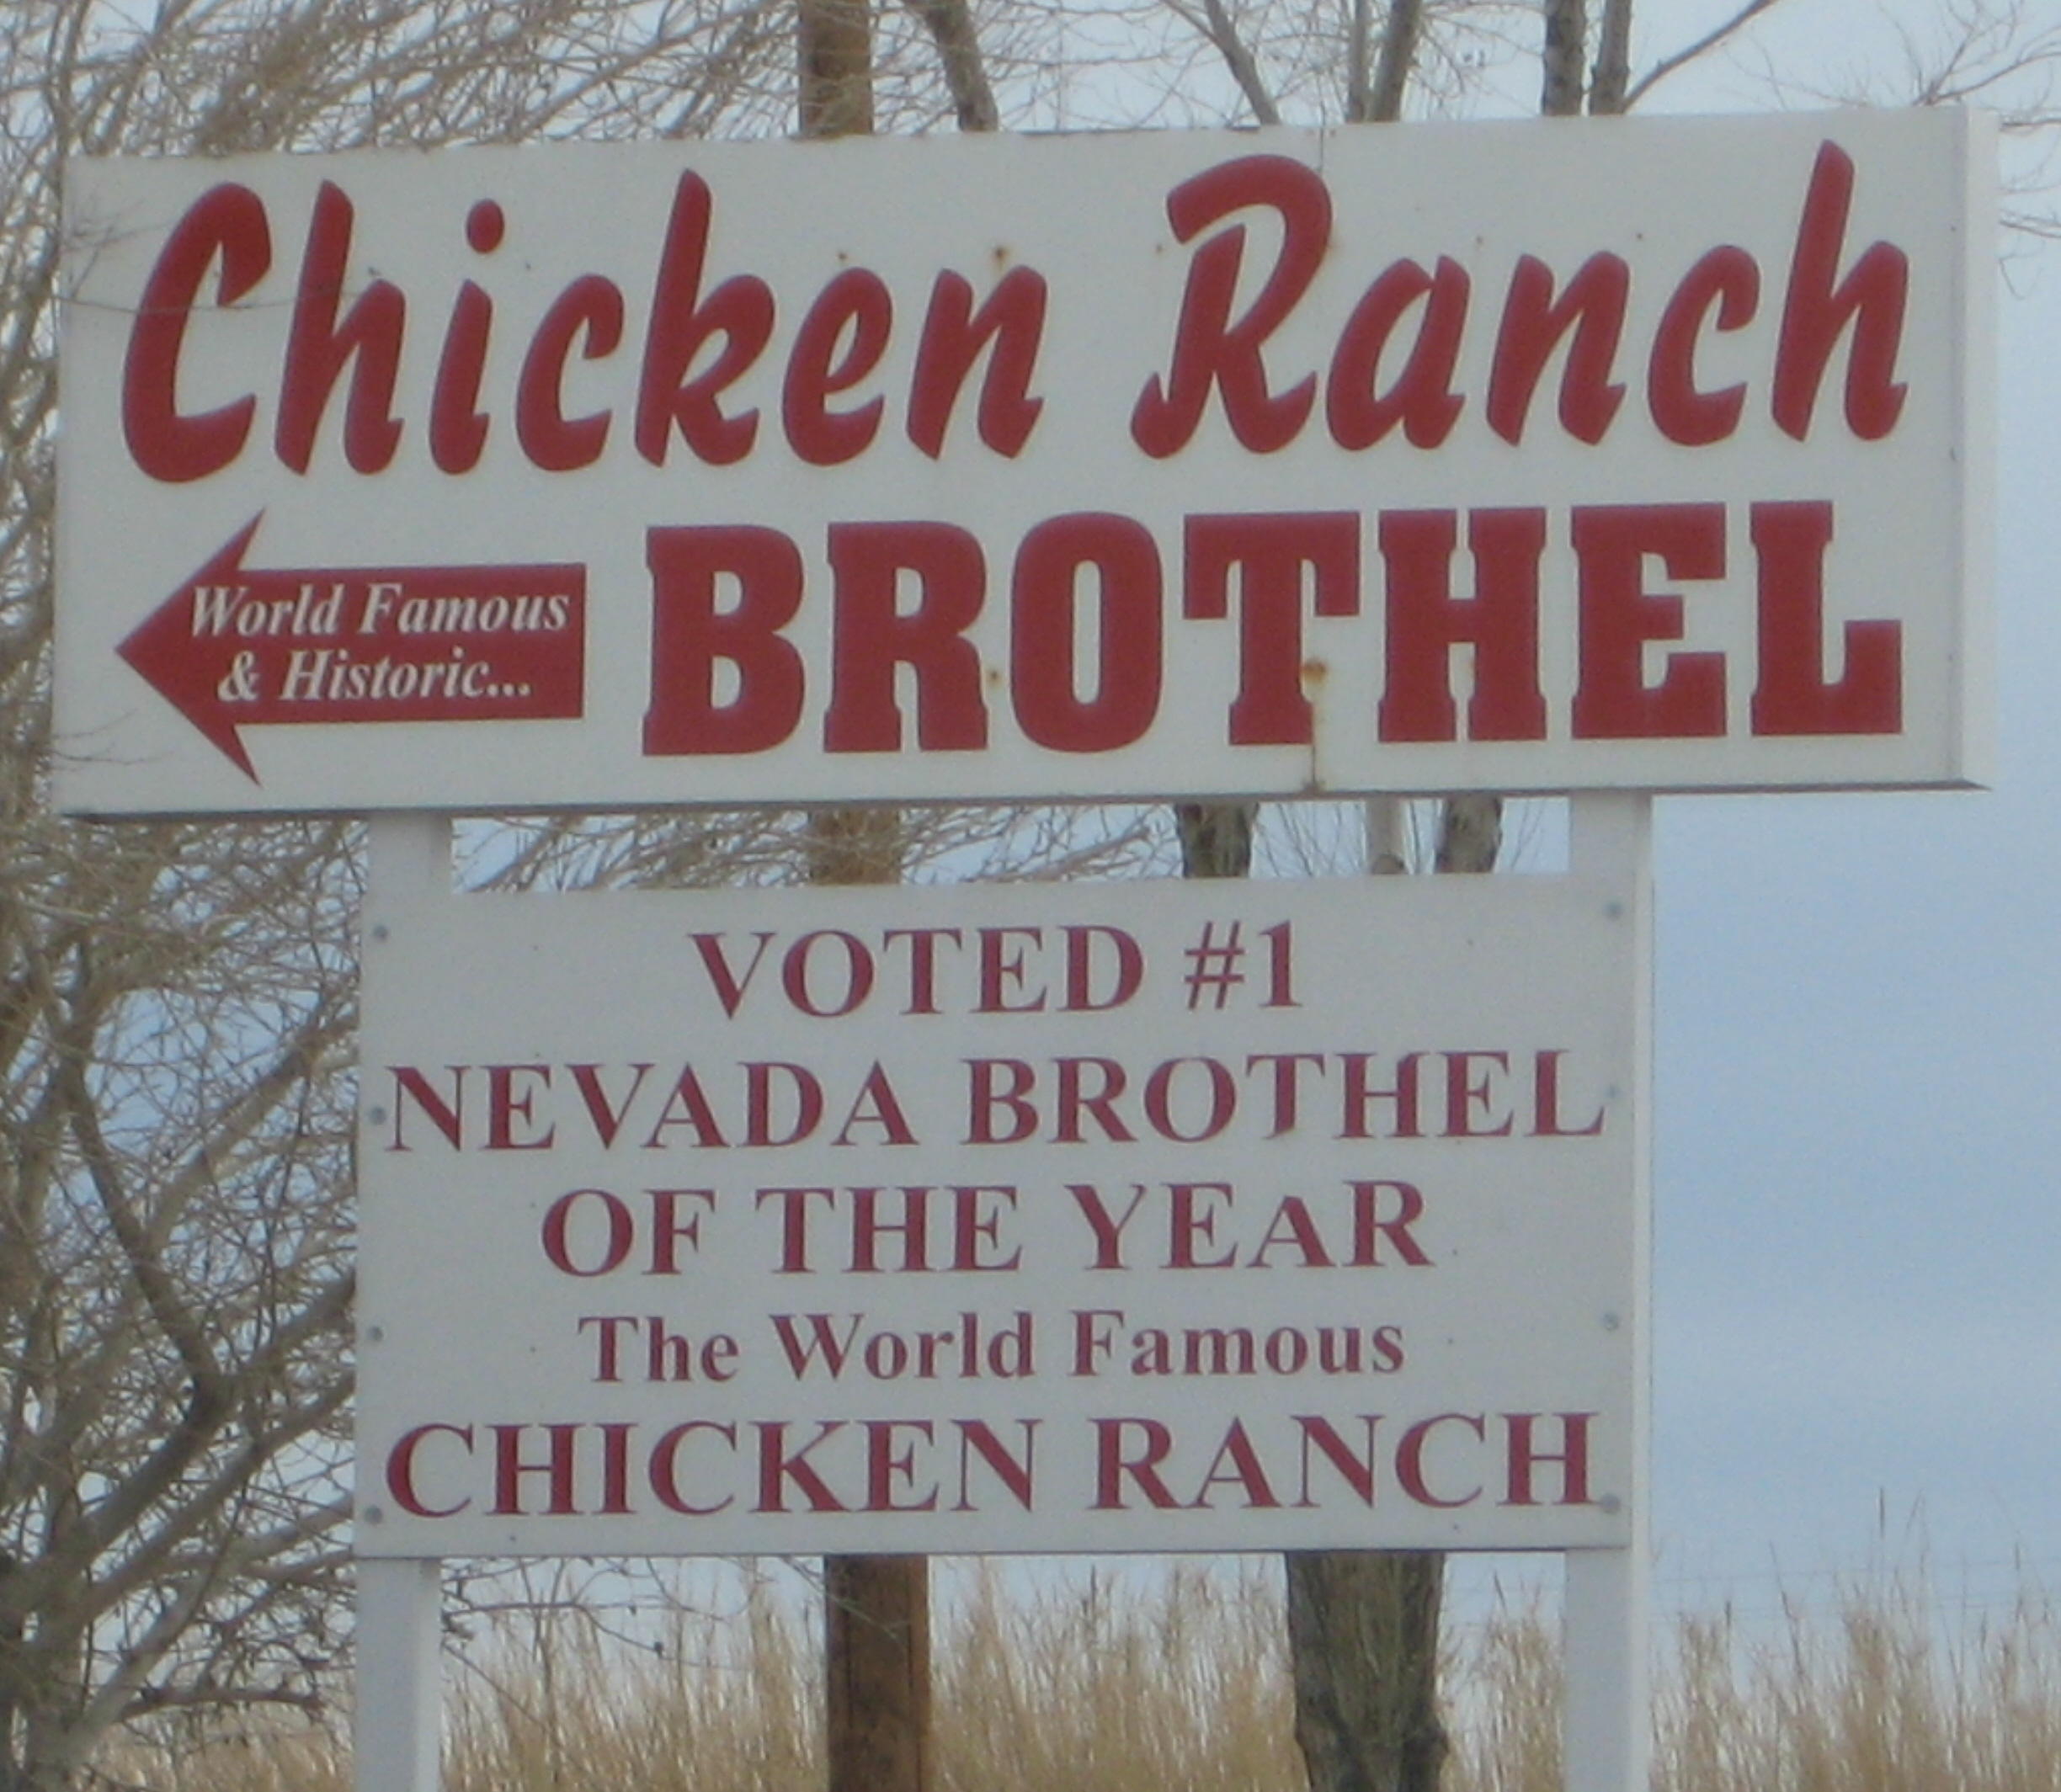 http://upload.wikimedia.org/wikipedia/commons/8/85/Chicken_Ranch_sign.JPG